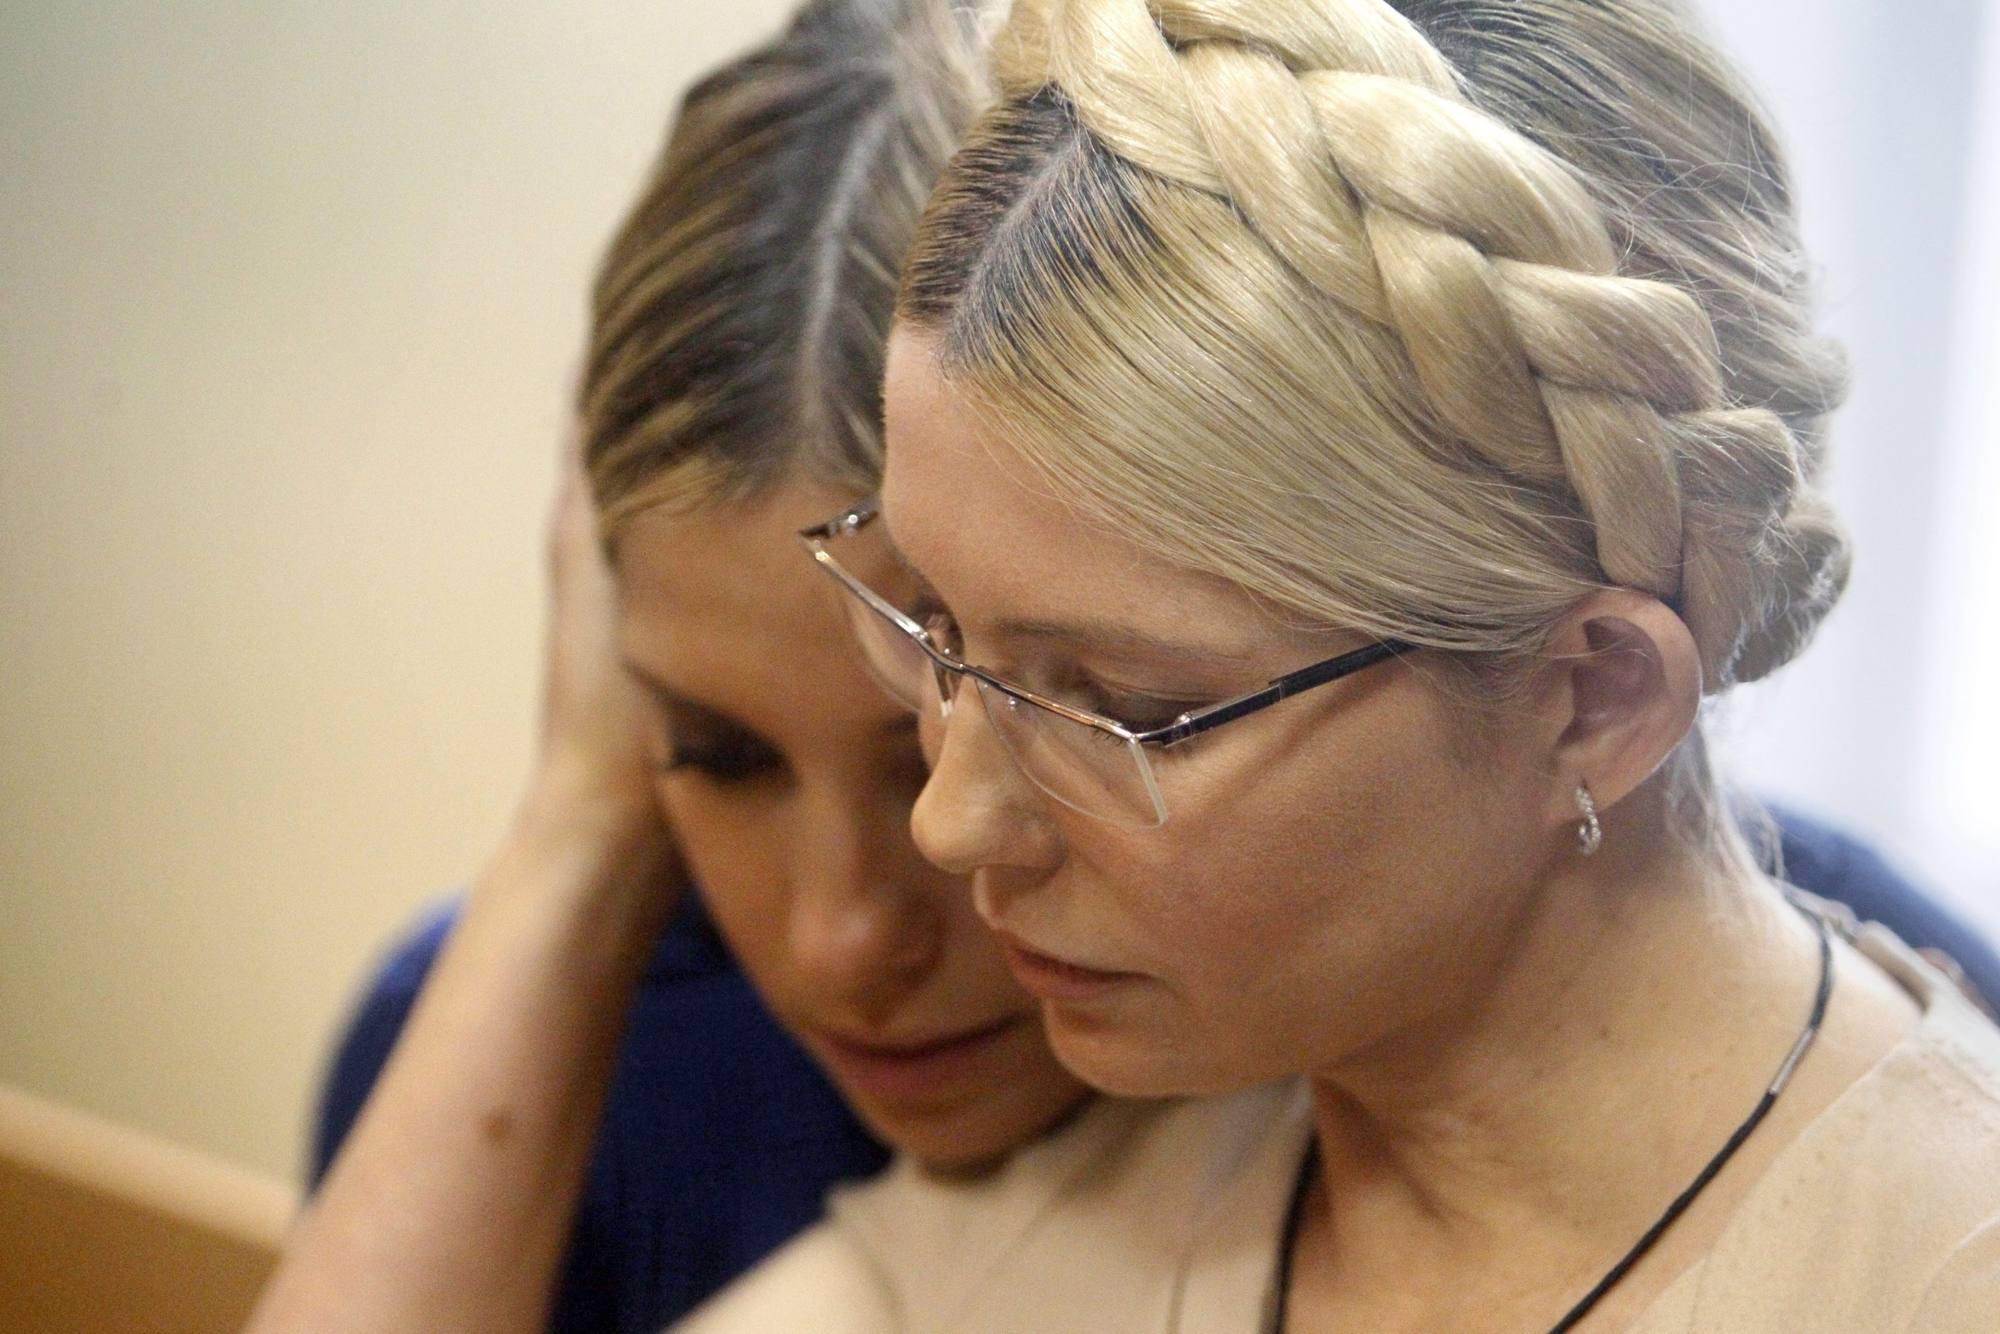 Yulia Tymoshenko e la figlia Ievghenia il giorno della sentenza (Epa/Dolzhenko)